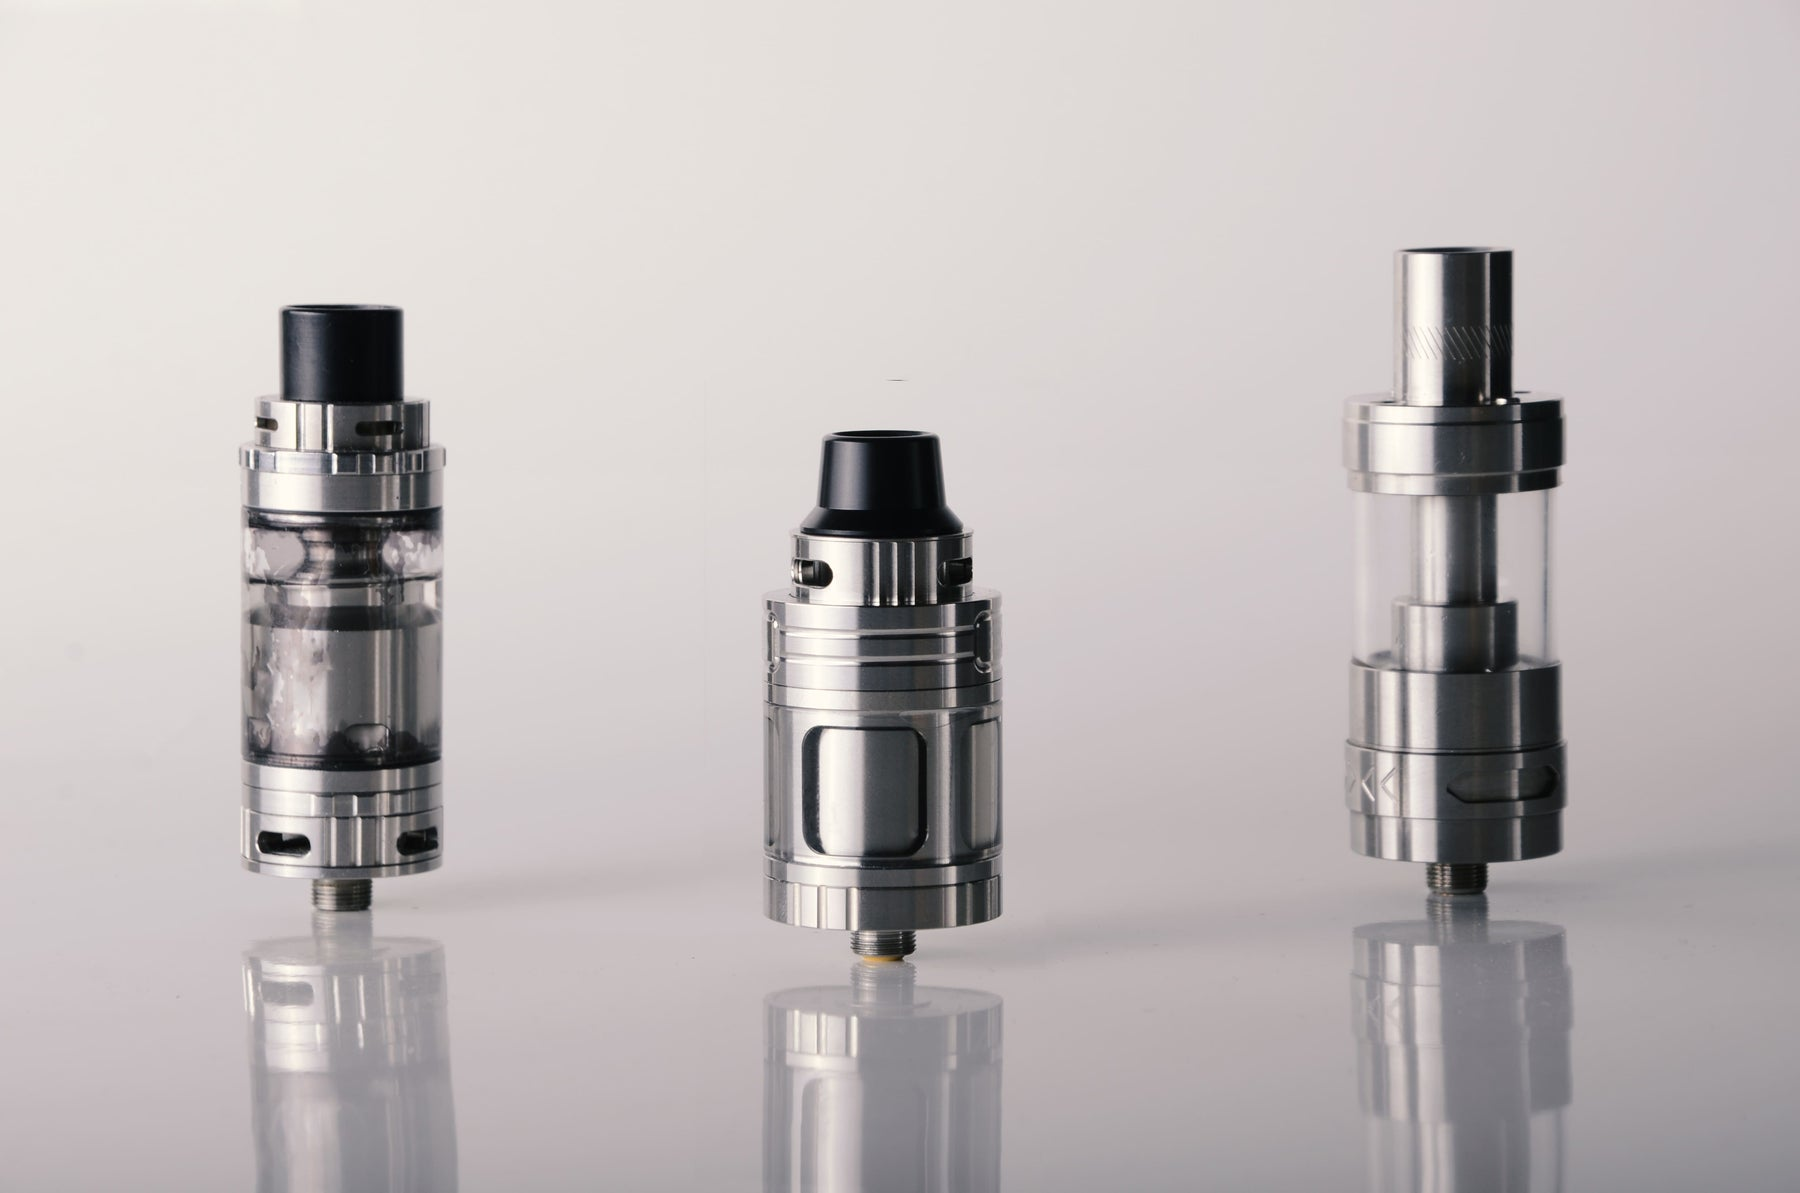 What is the Best Vape Tank For Flavor in 2019?